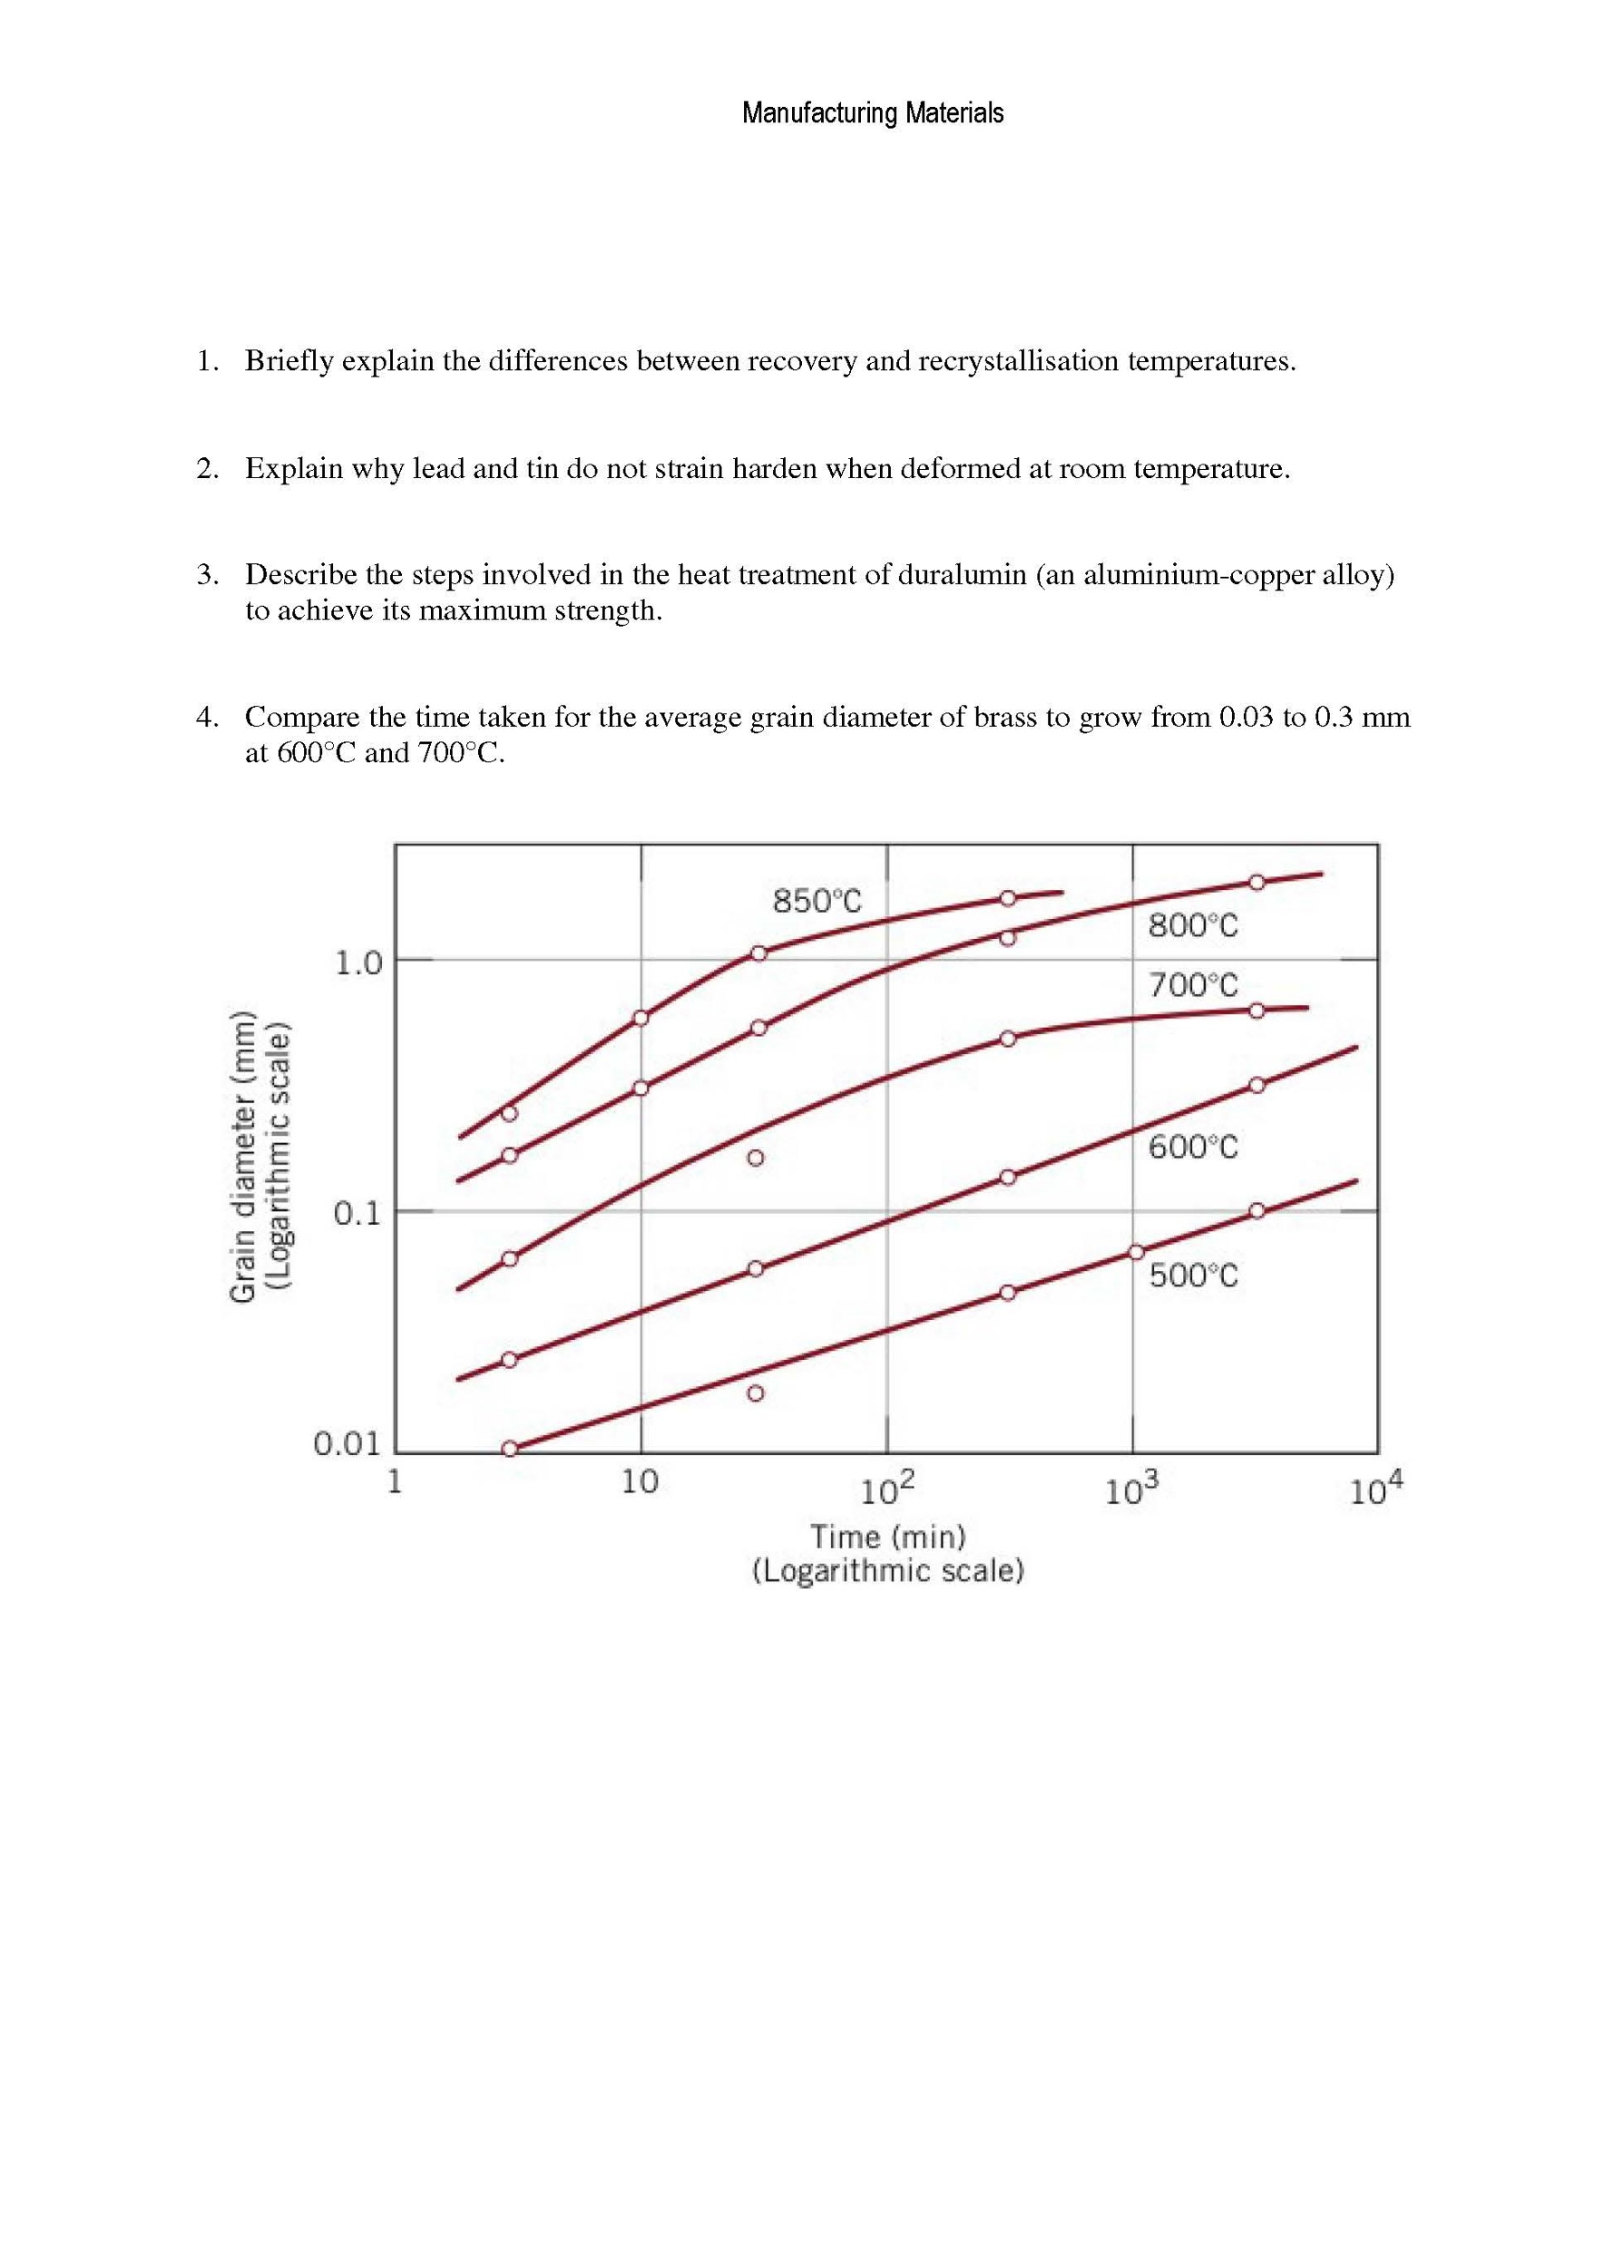 worksheet Human Body Pushing The Limits Strength Worksheet mechanical engineering archive august 24 2015 chegg com image for 1 briefly explain the differences between recovery and recrystallisation temperatures 2